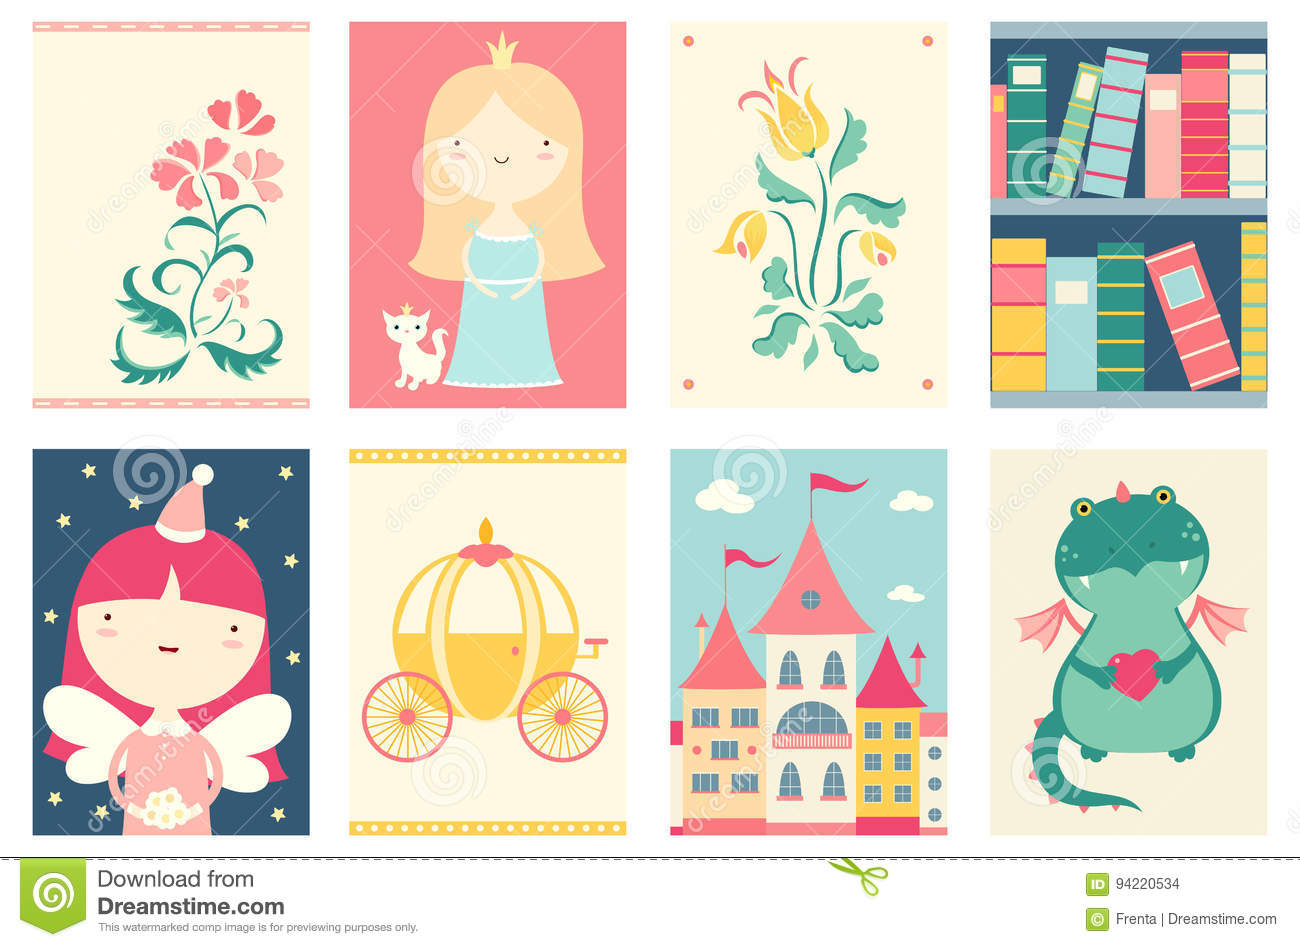 fairy tale powerpoint template free download gallery - templates, Modern powerpoint